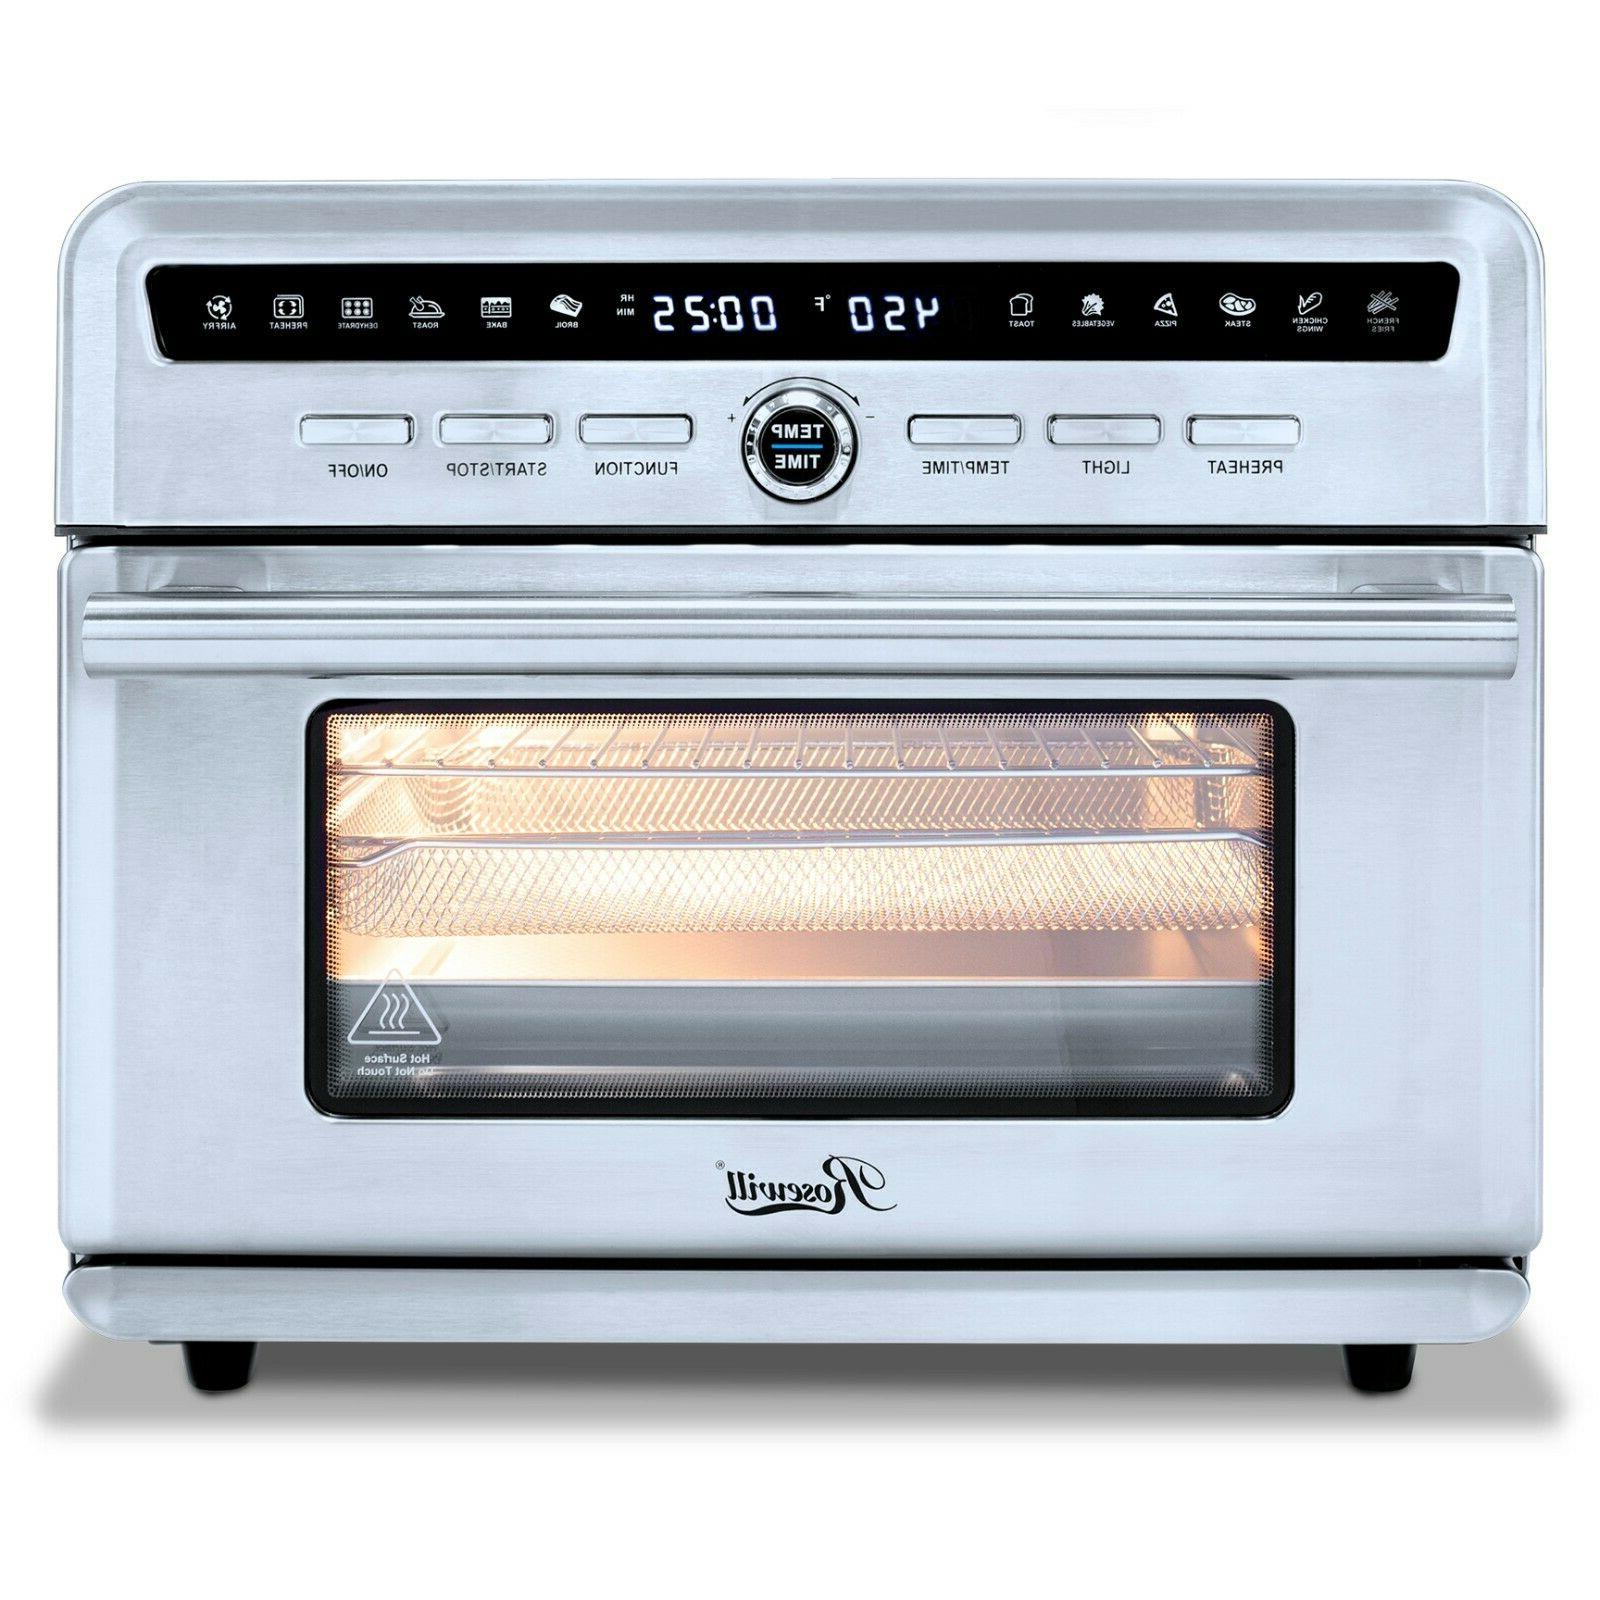 Rosewill Air Toaster Size 26.4 Capacity